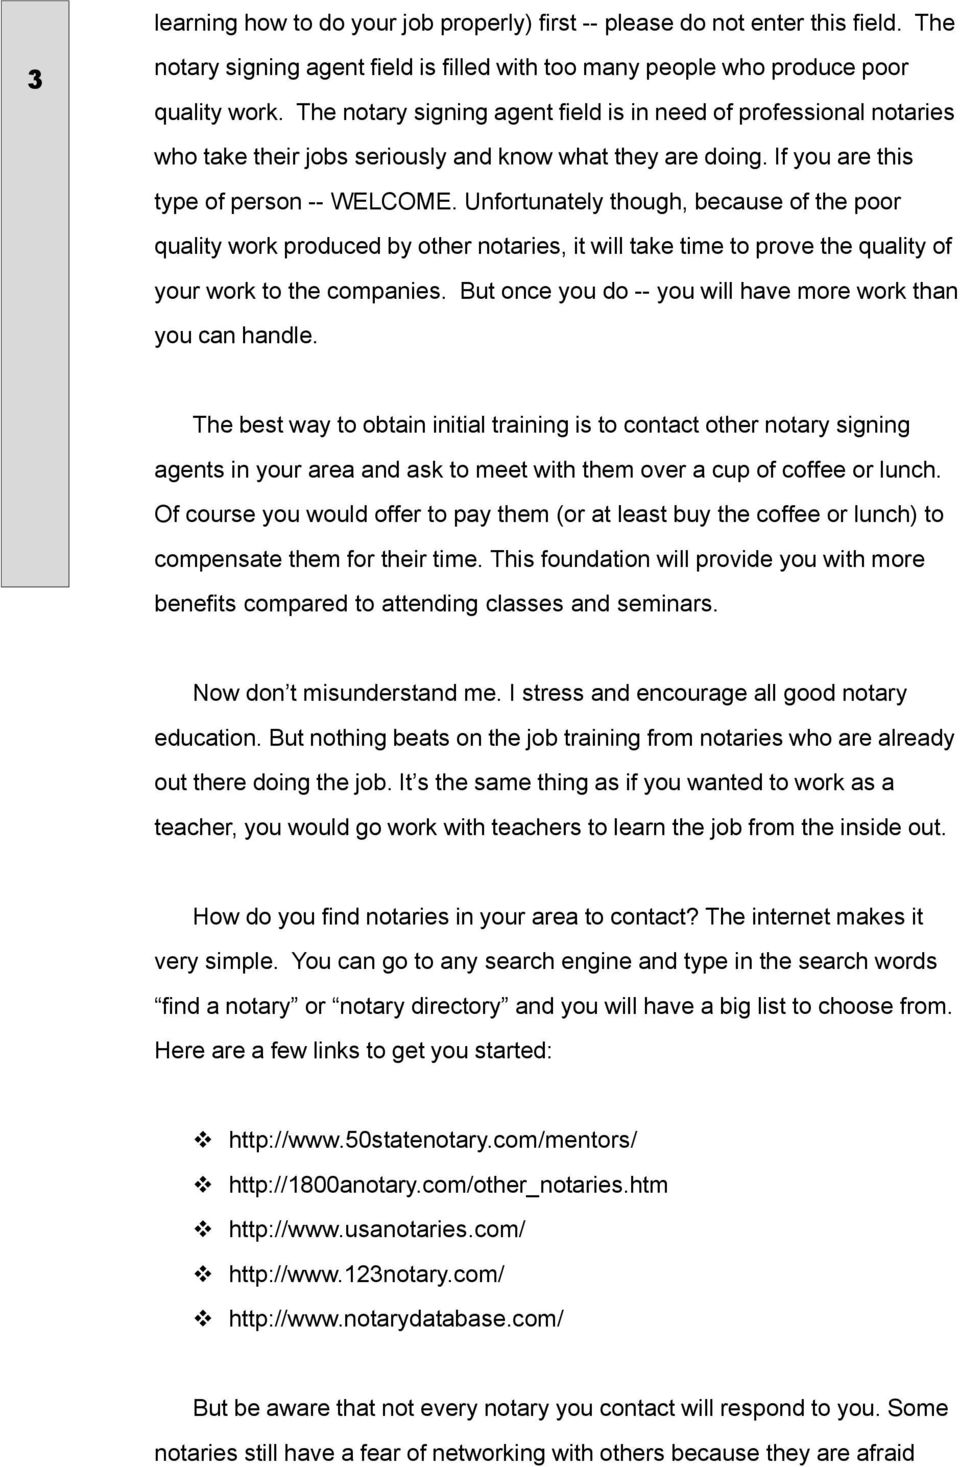 The Free Introductory Signing Agent Training Course - PDF